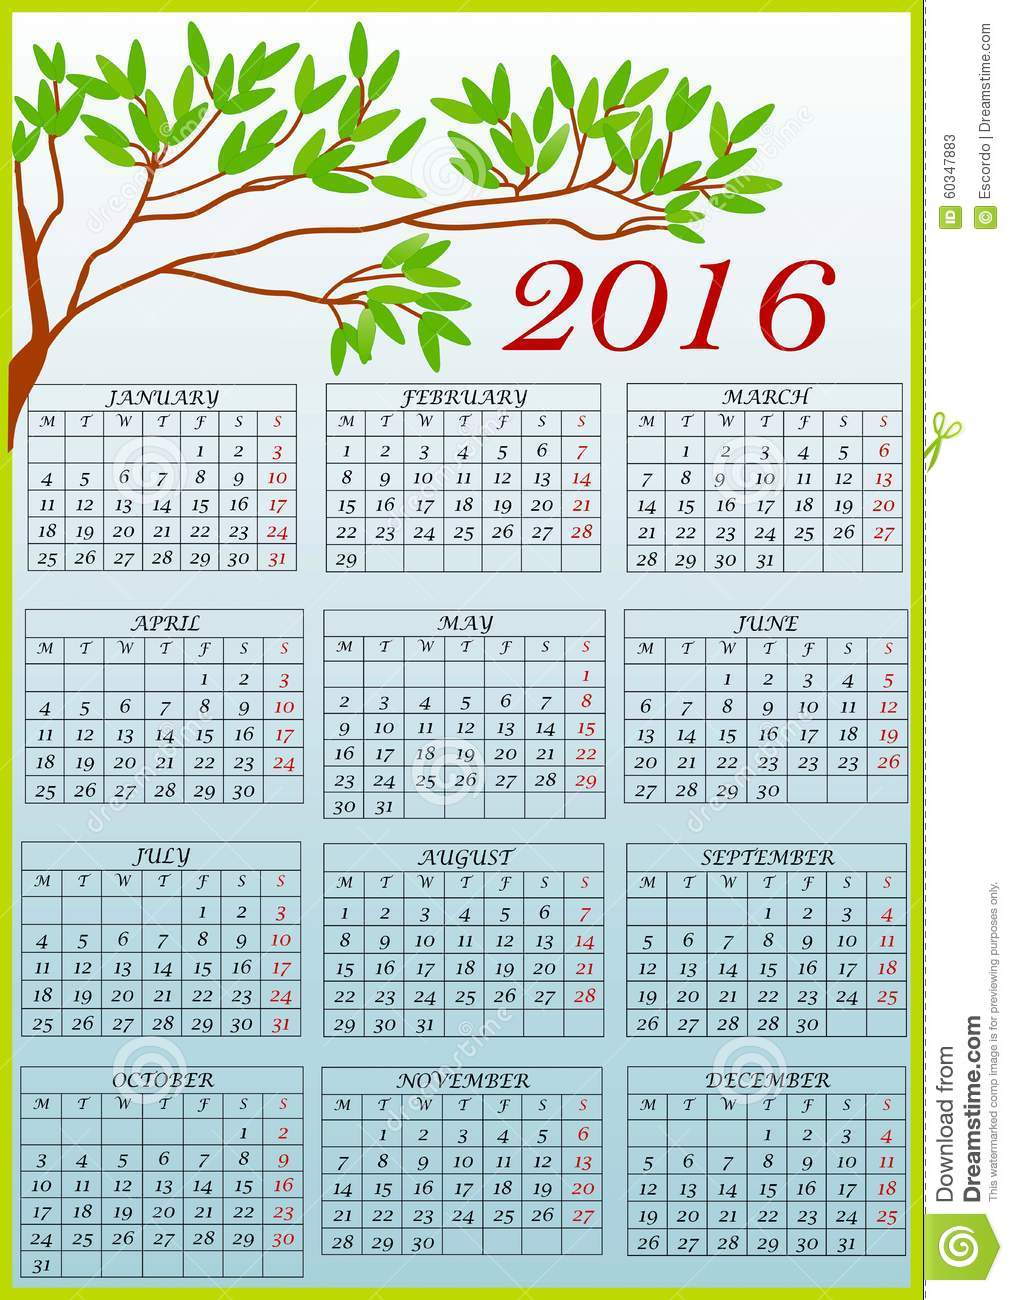 Clip Art With Calendar 2016 Stock Illustration - Image: 60347883 banner black and white download